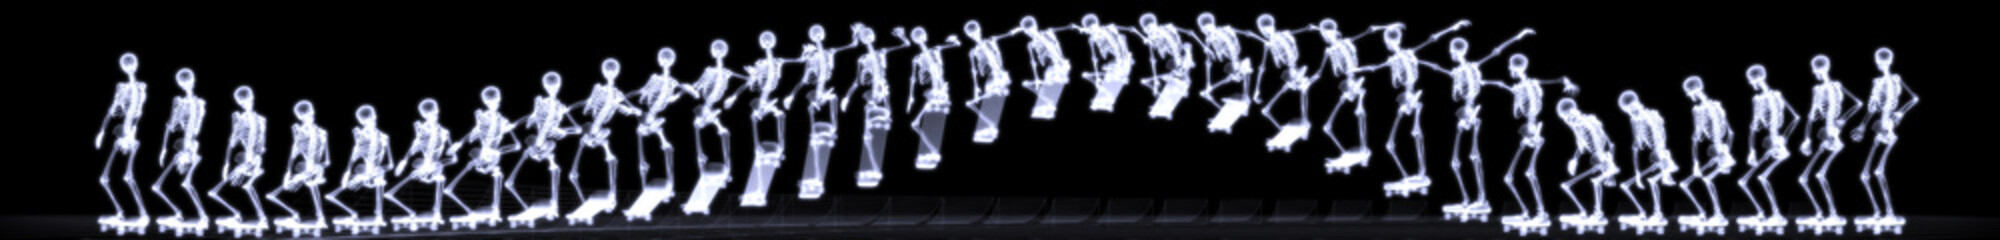 Xray of human skeleton jumping freestyle in halfpipe